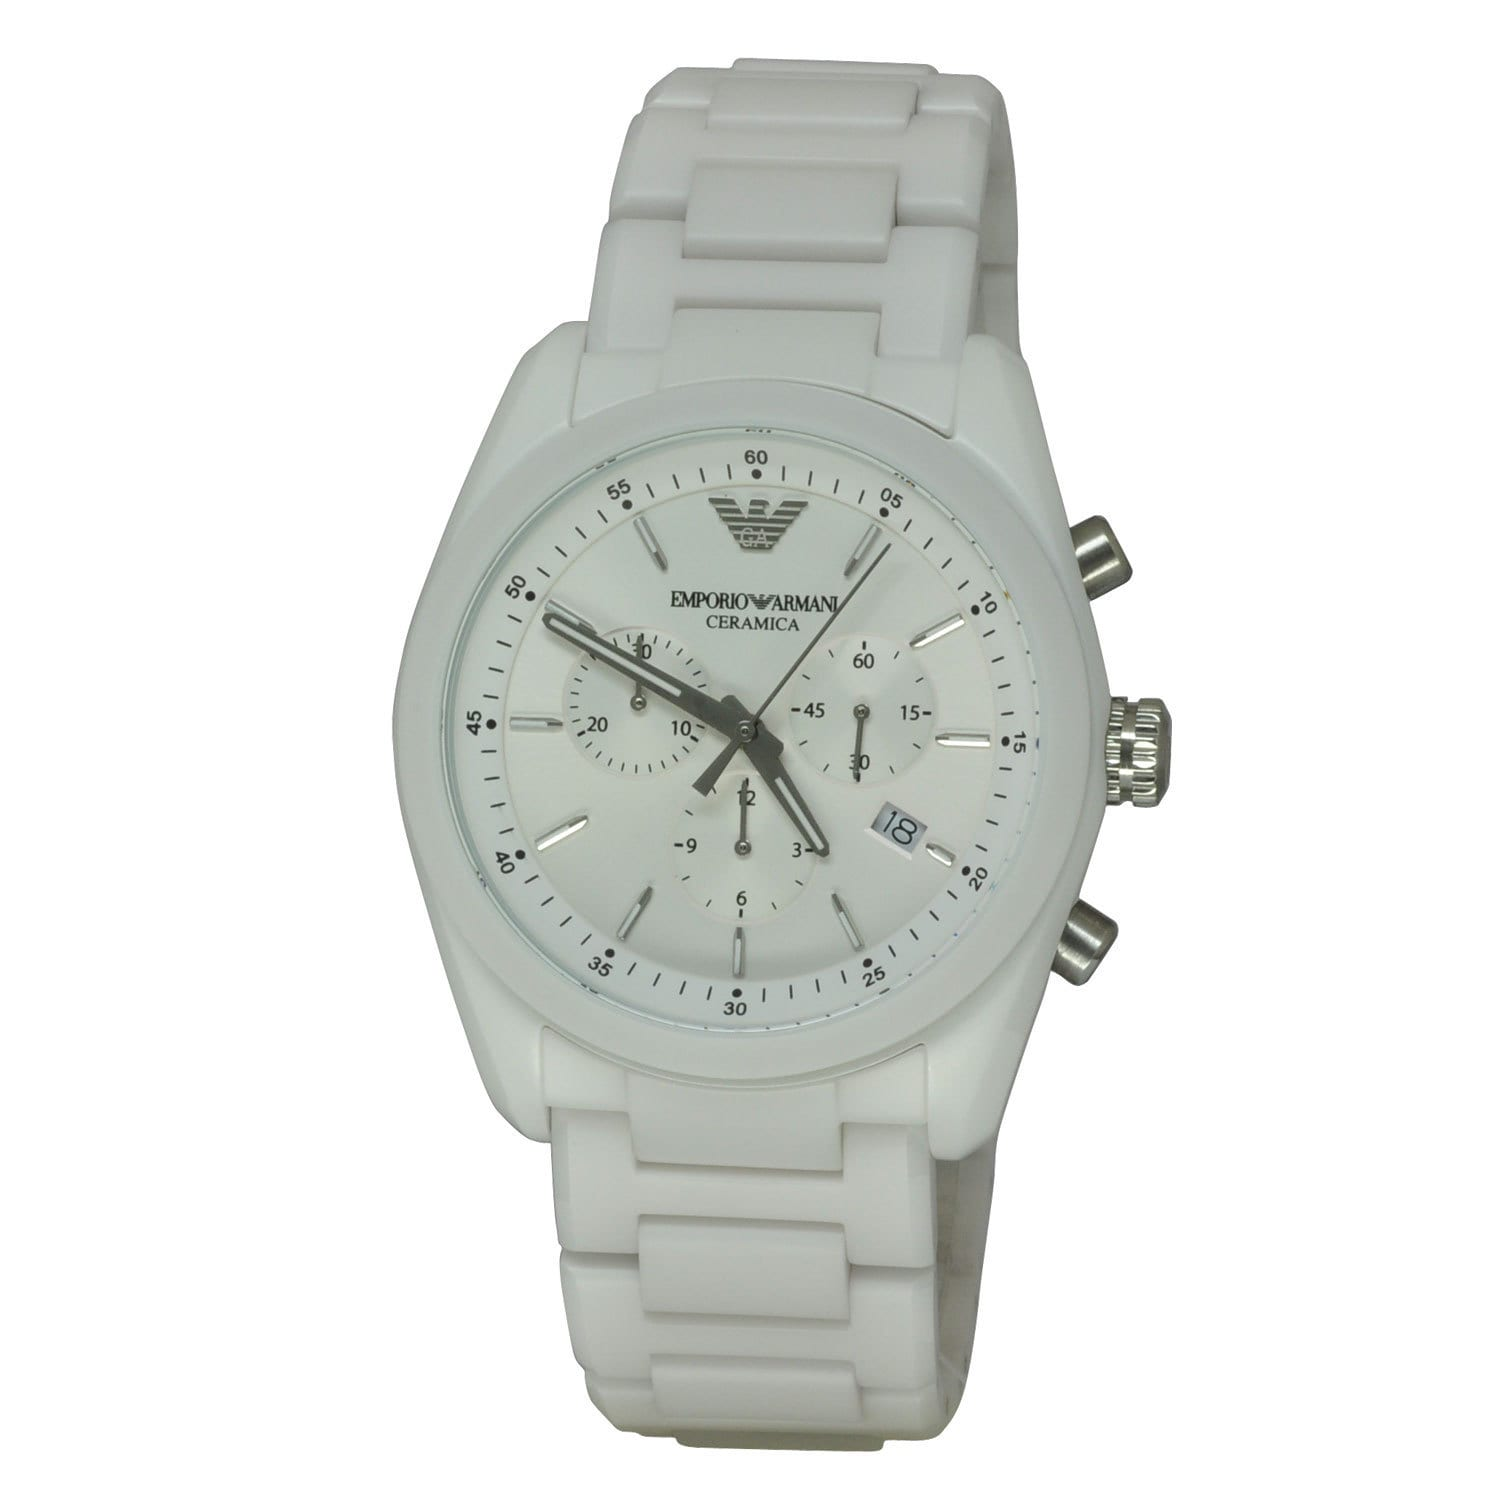 Emporio Armani Men's AR1493 Ceramica White Watch (White),...